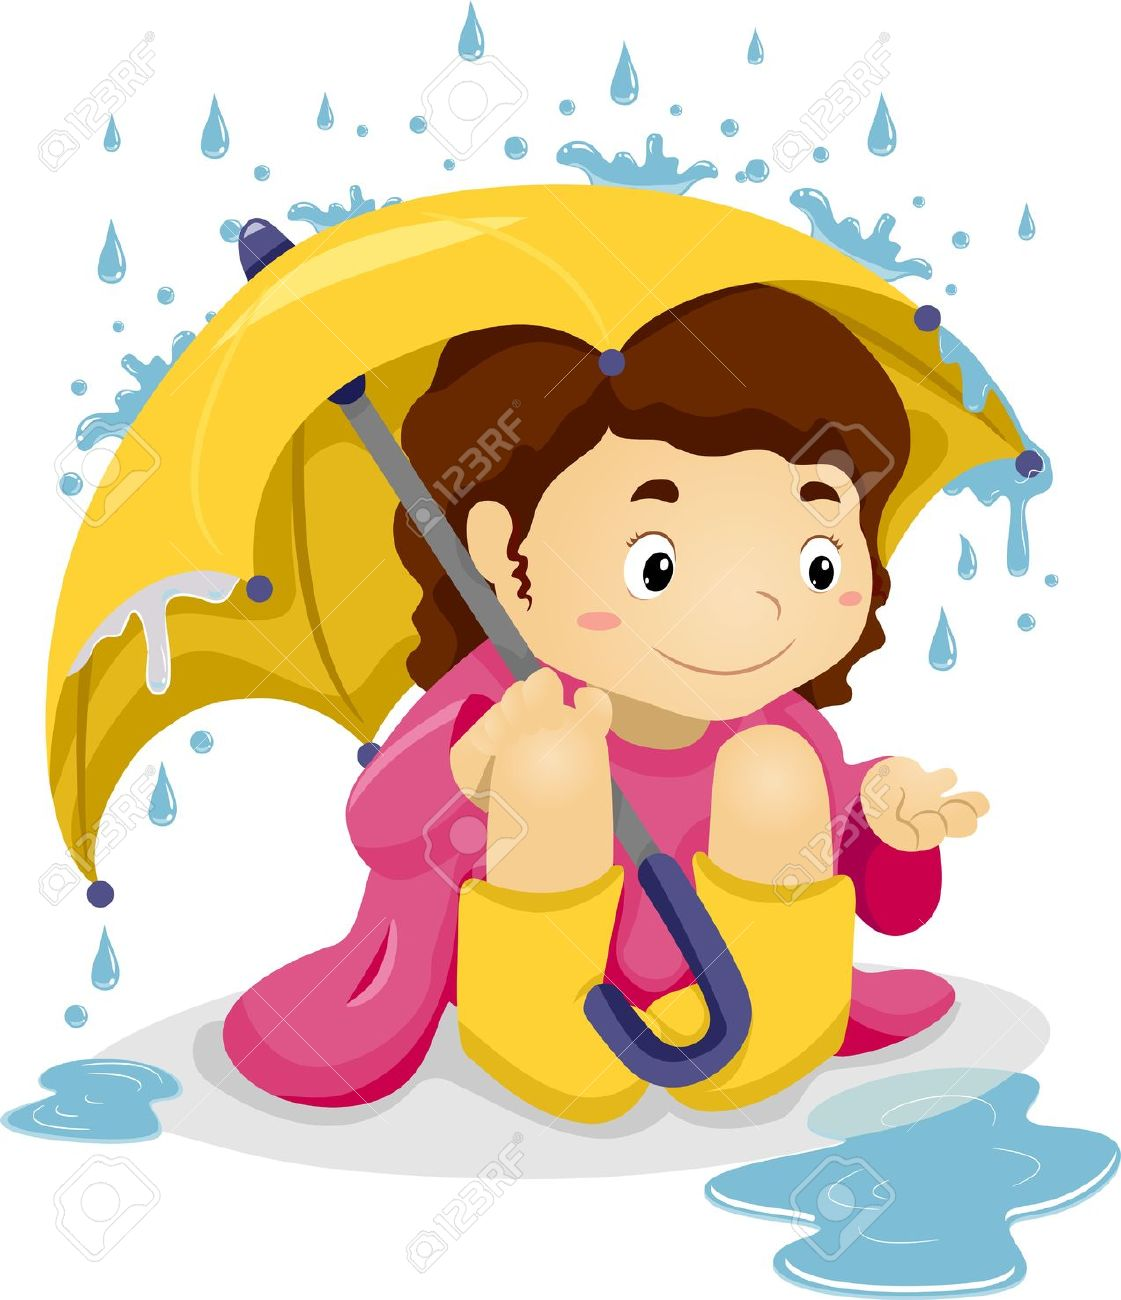 Raincoat Stock Photos & Pictures. Royalty Free Raincoat Images And ...